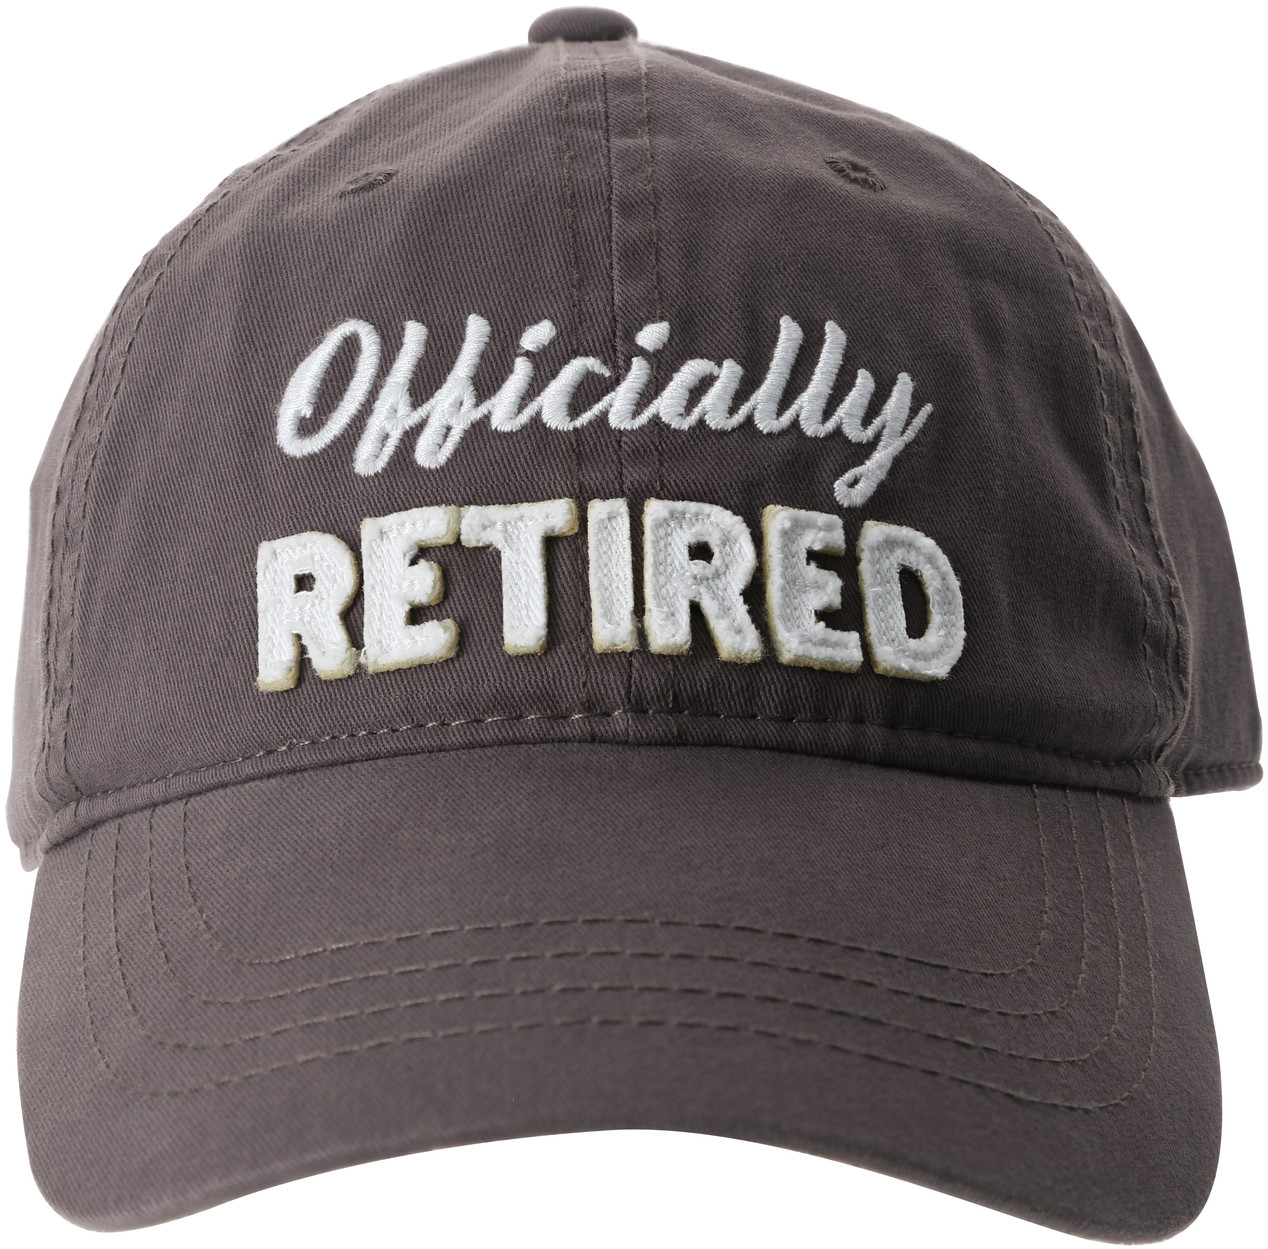 Officially by Retired Life - Officially - Gray Adjustable Hat